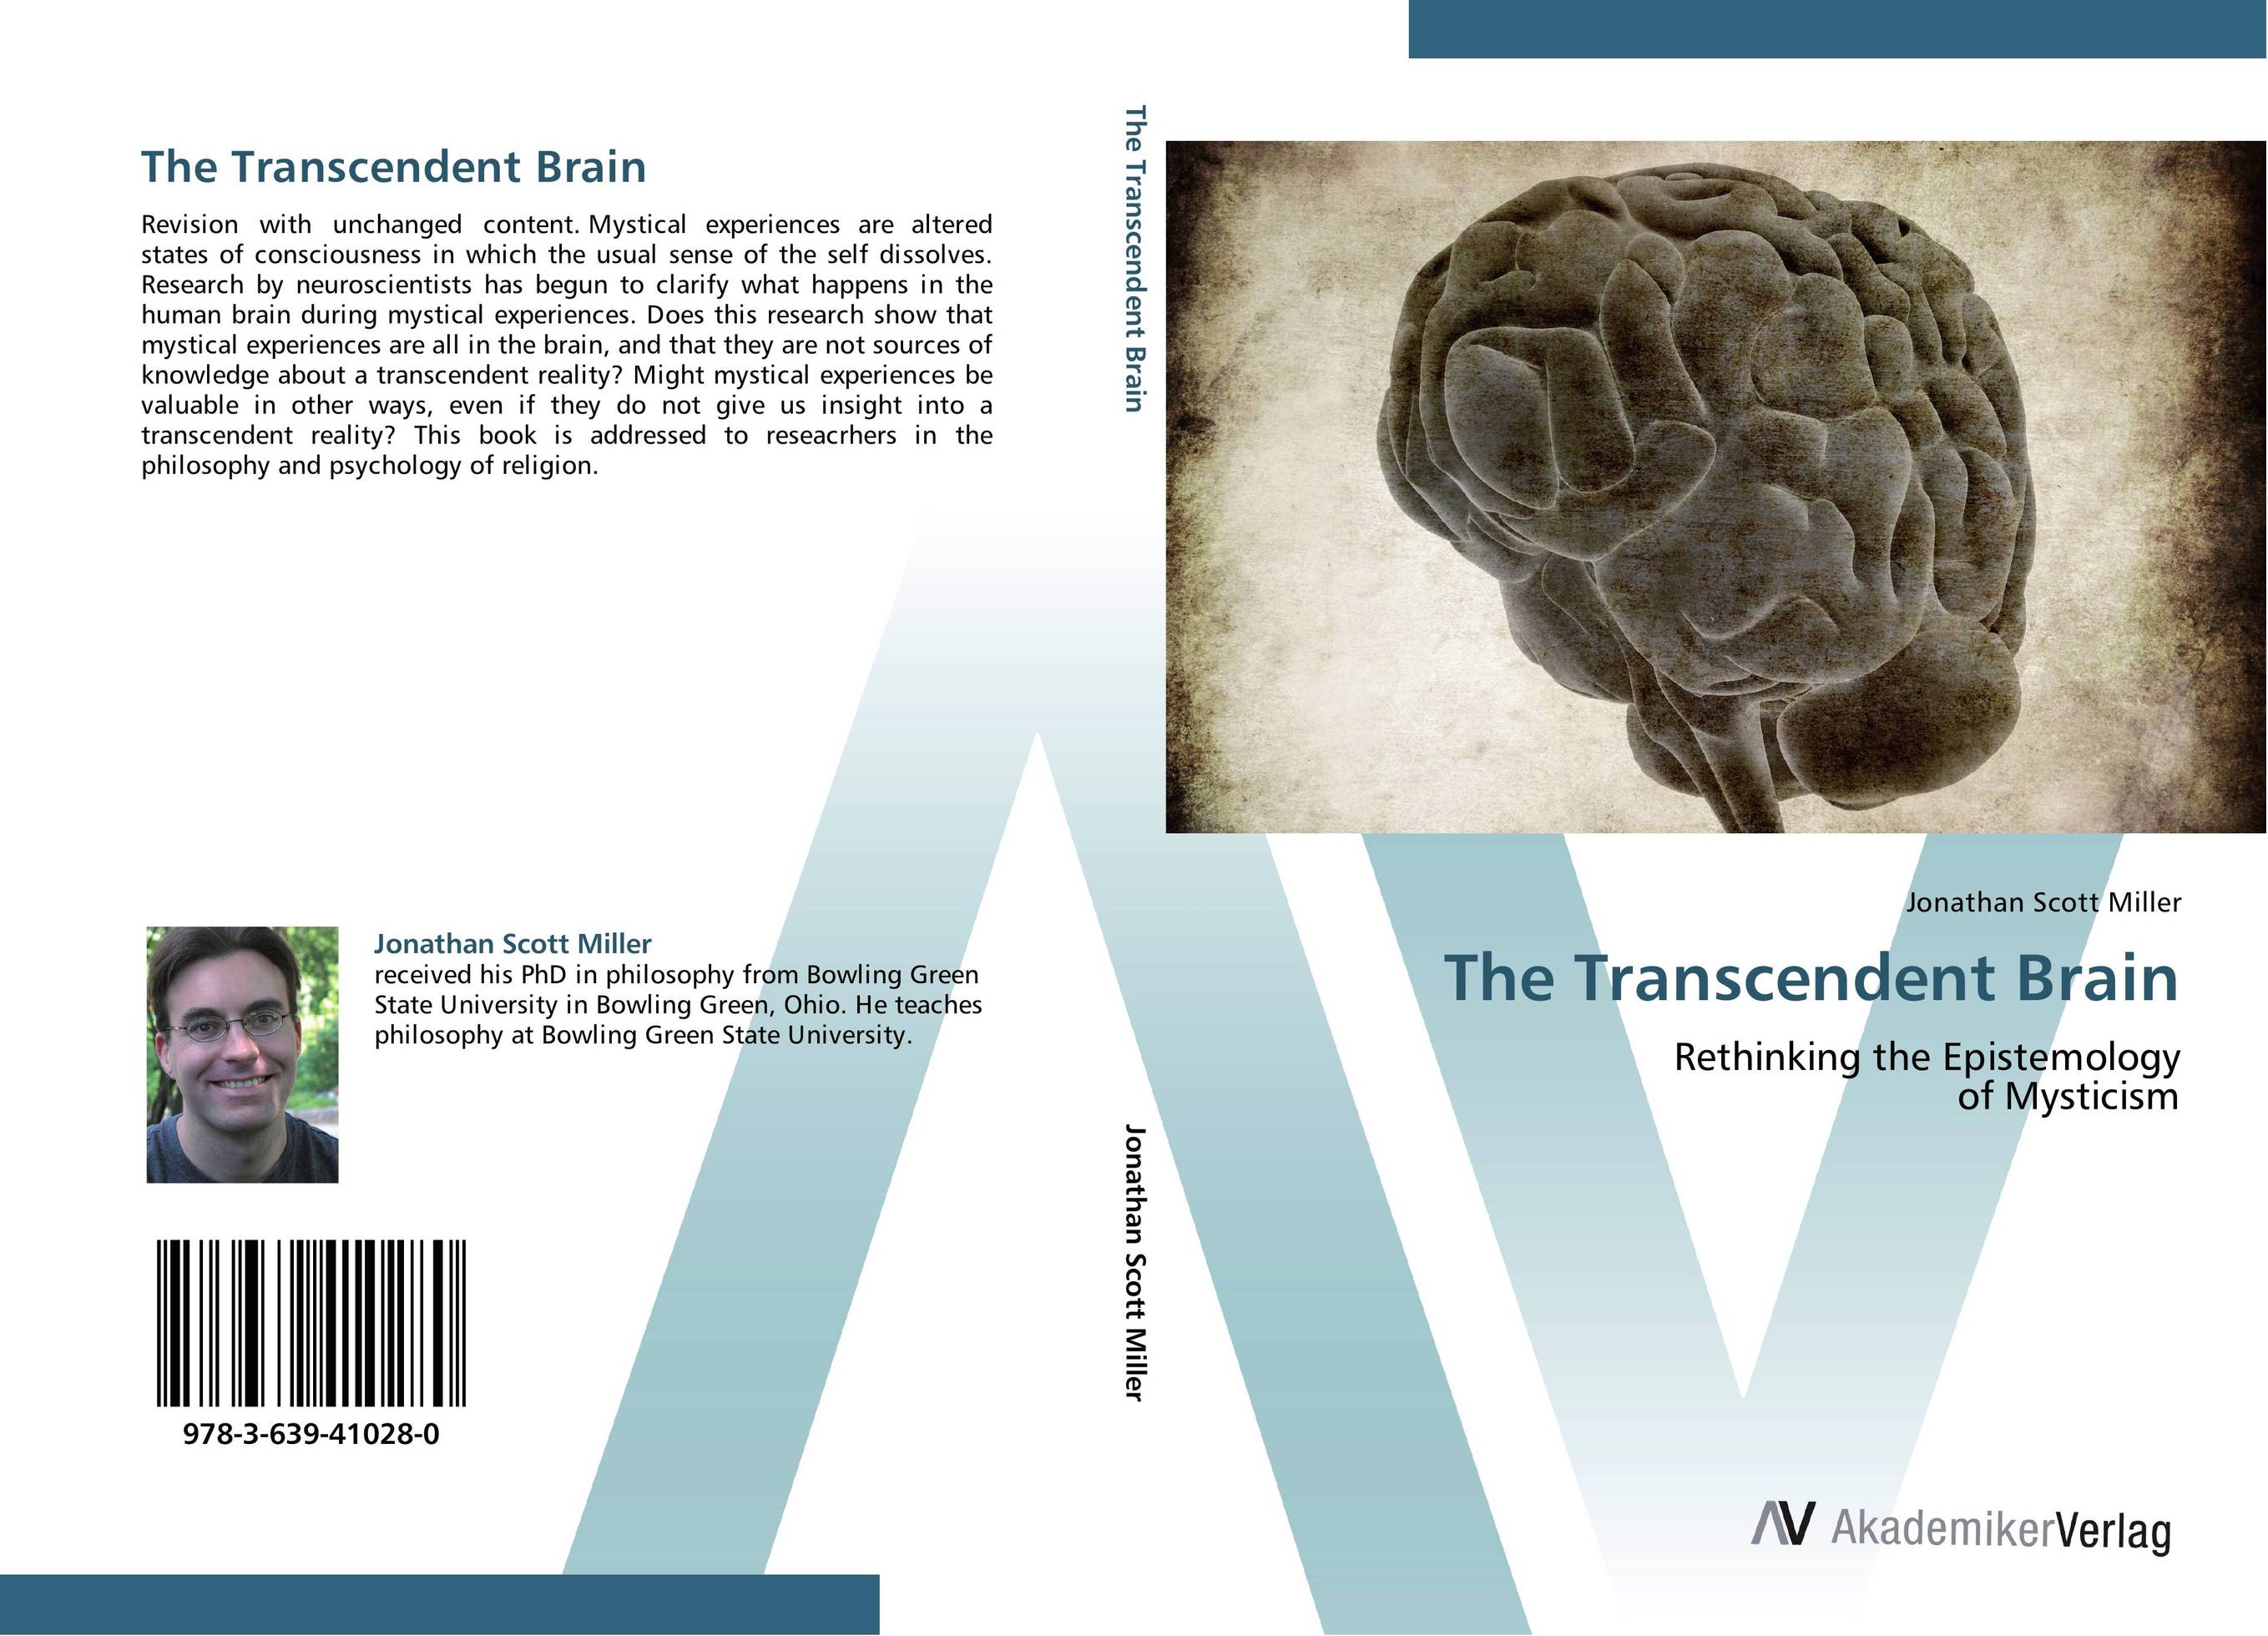 The Transcendent Brain j allan hobson the dream drugstore – chemically altered states of consciousness